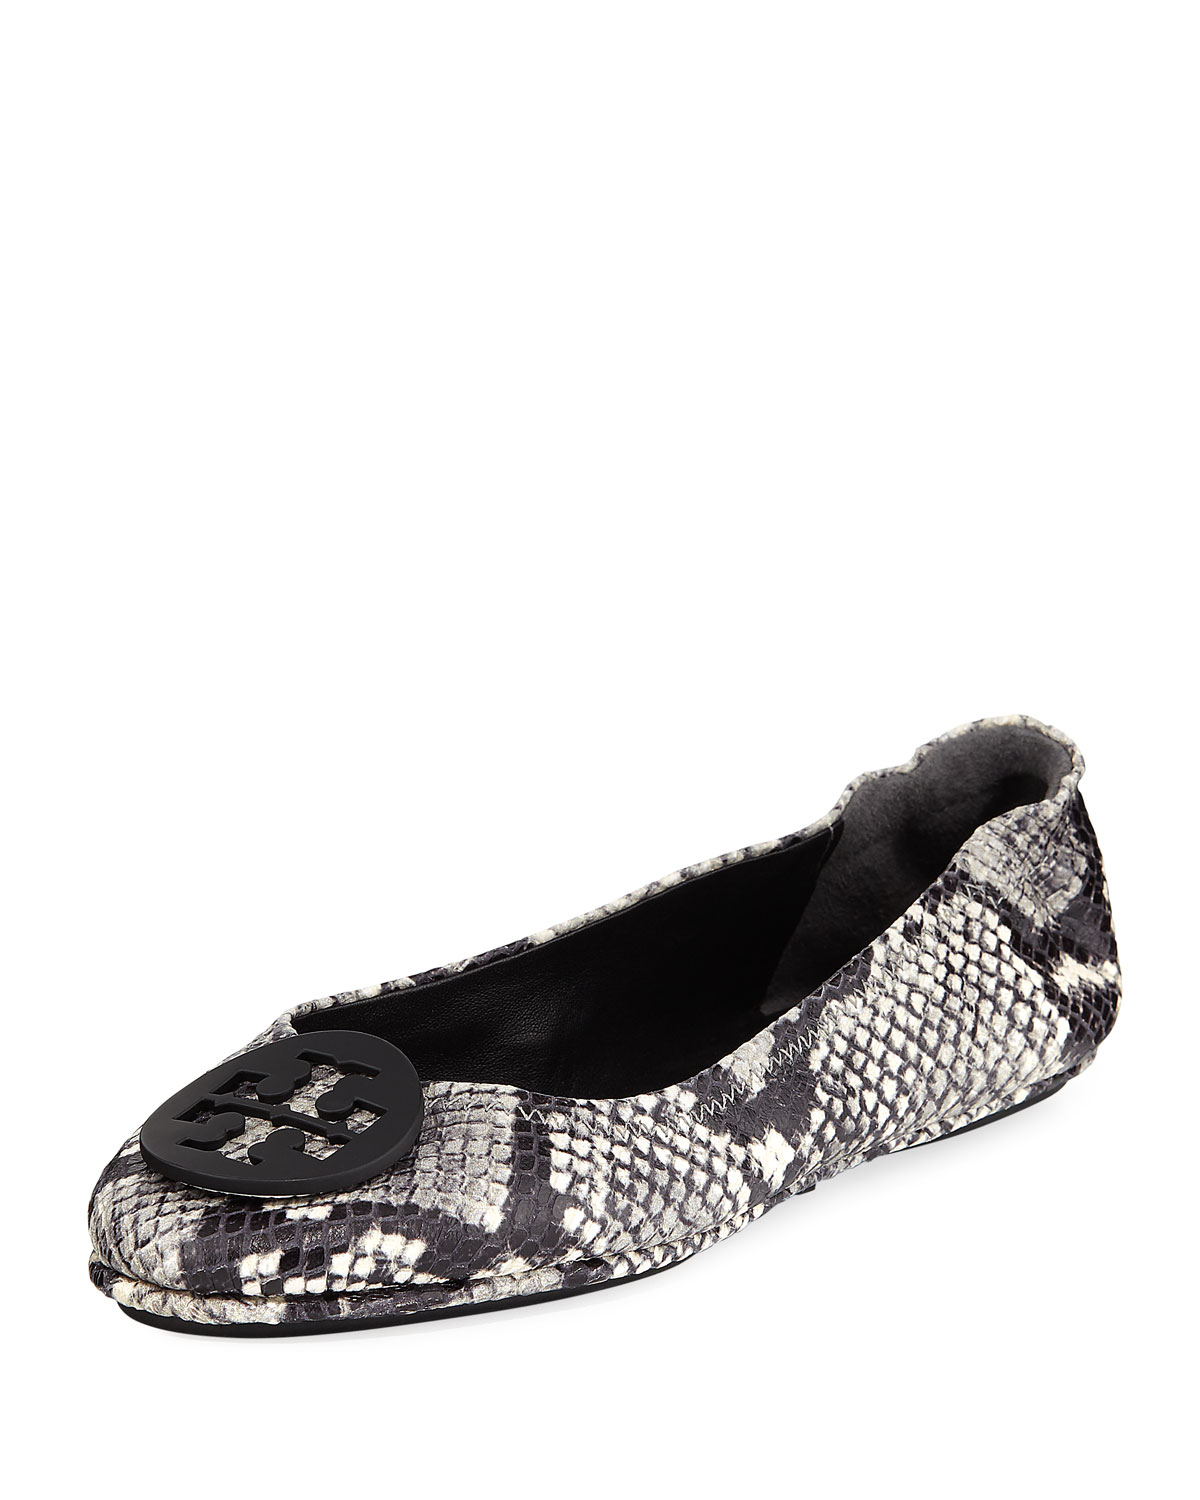 f53fa365960 Tory Burch Minnie Snake-Print Travel Ballet Flat